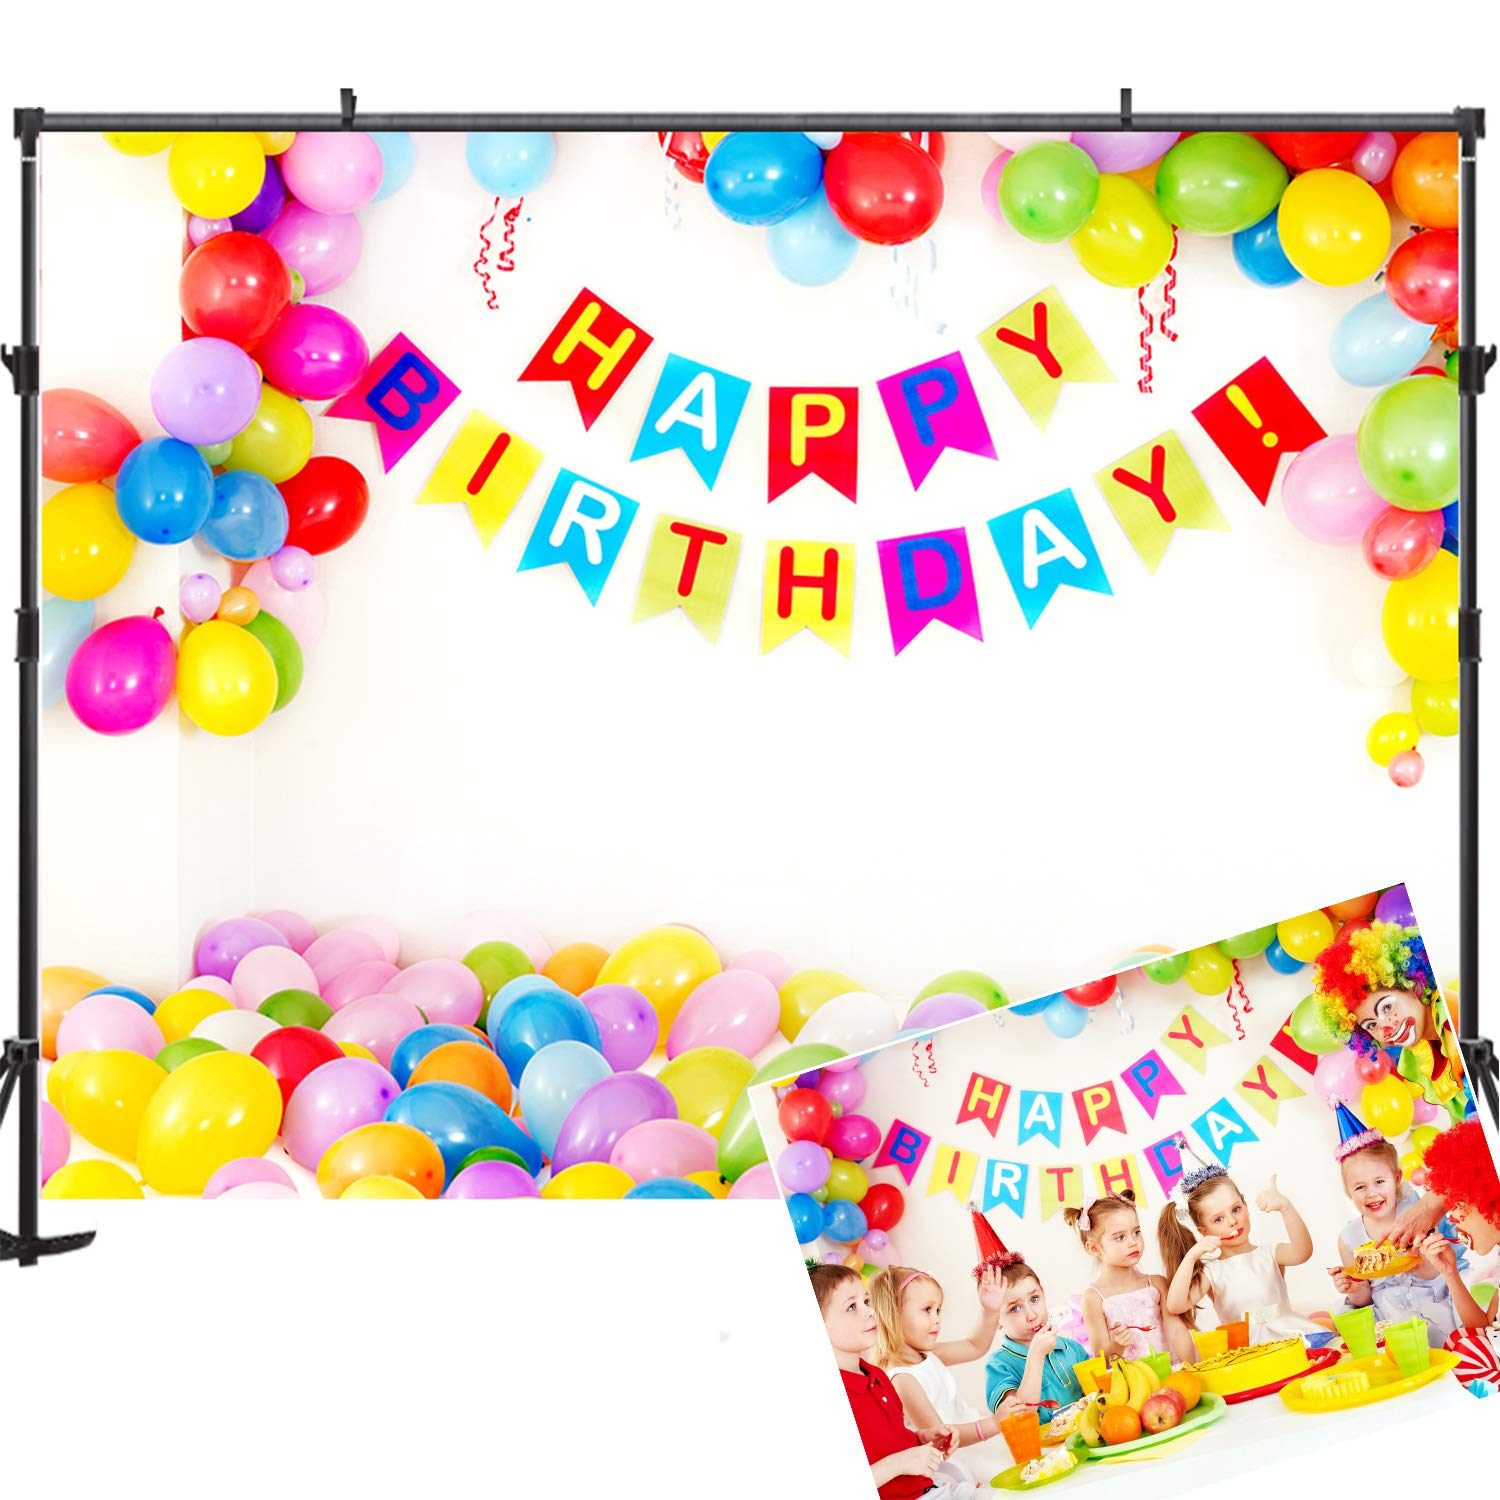 Kate 10x6.5ft 1st Birthday Backdrop Birthday Theme Party Decorations Background